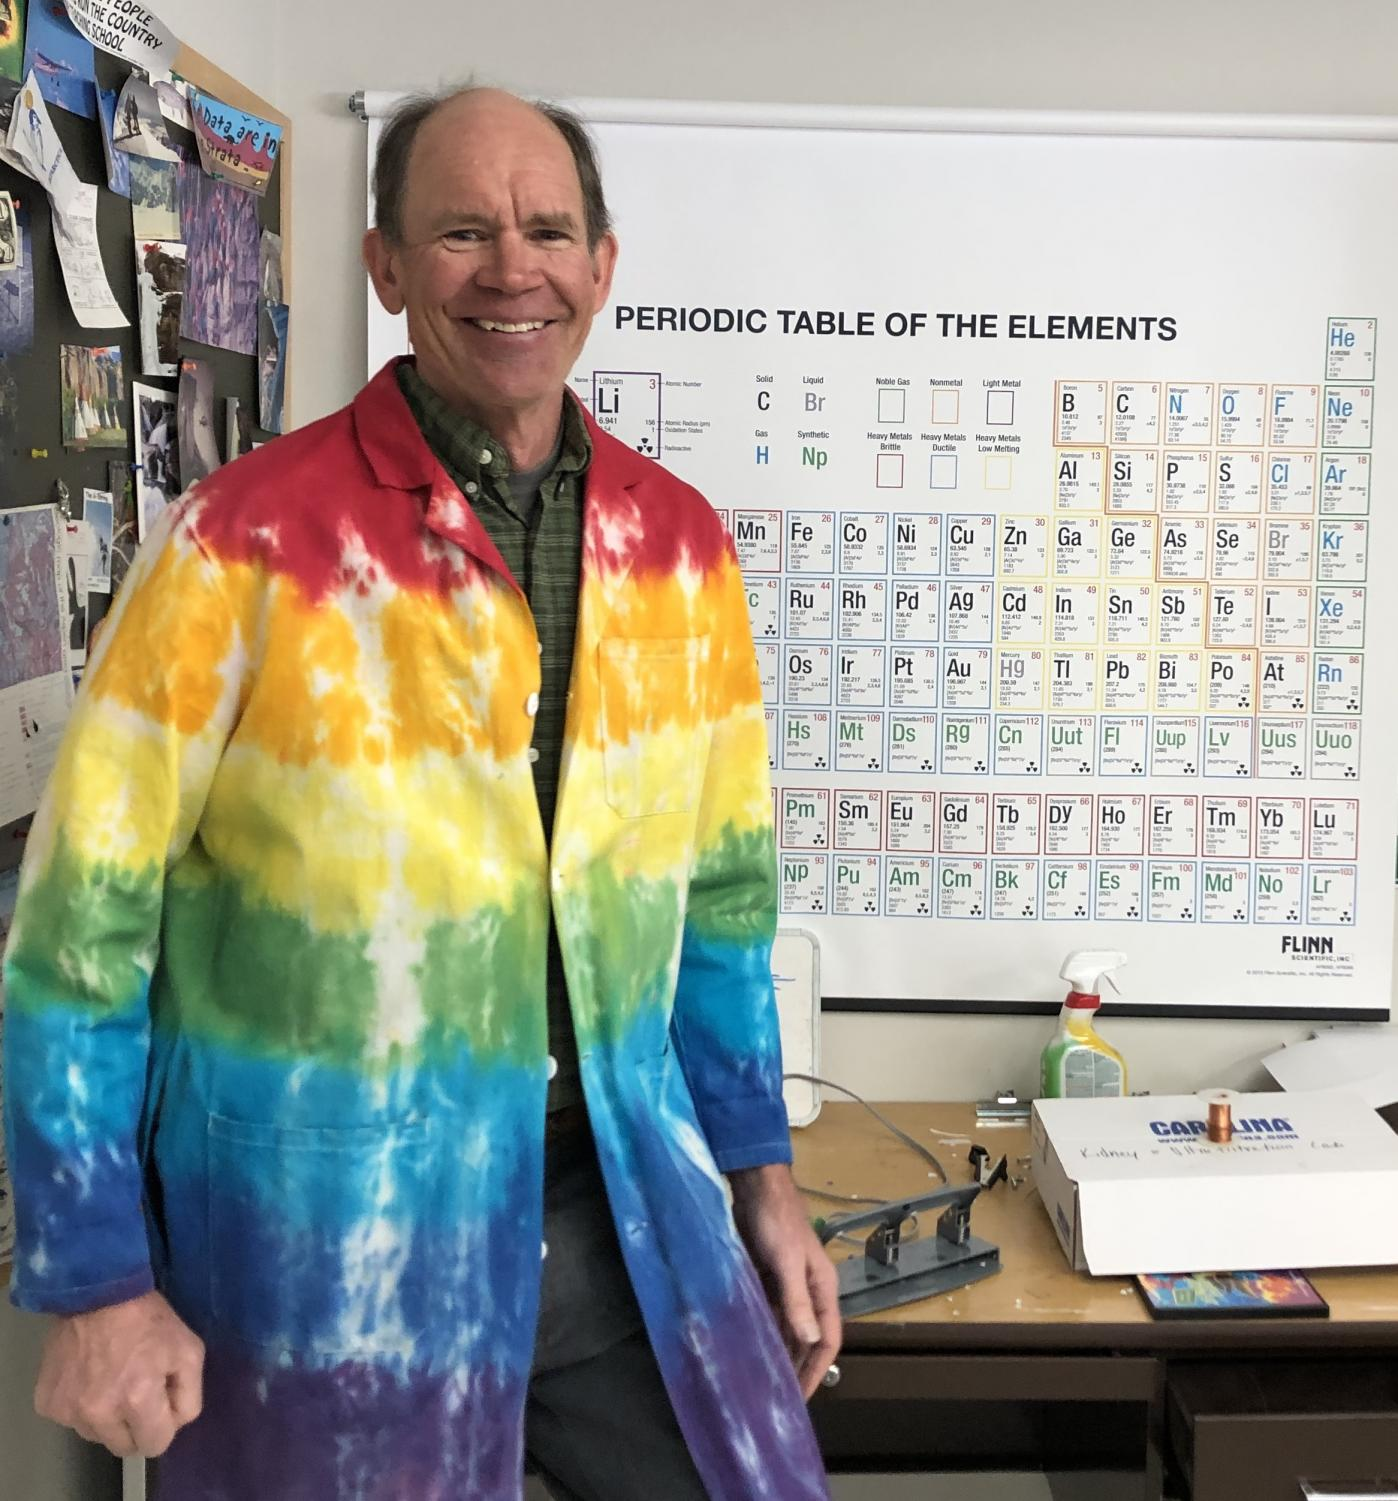 Retiring teacher, Andre Willie, pictured posing in his iconic tie-dye lab coat